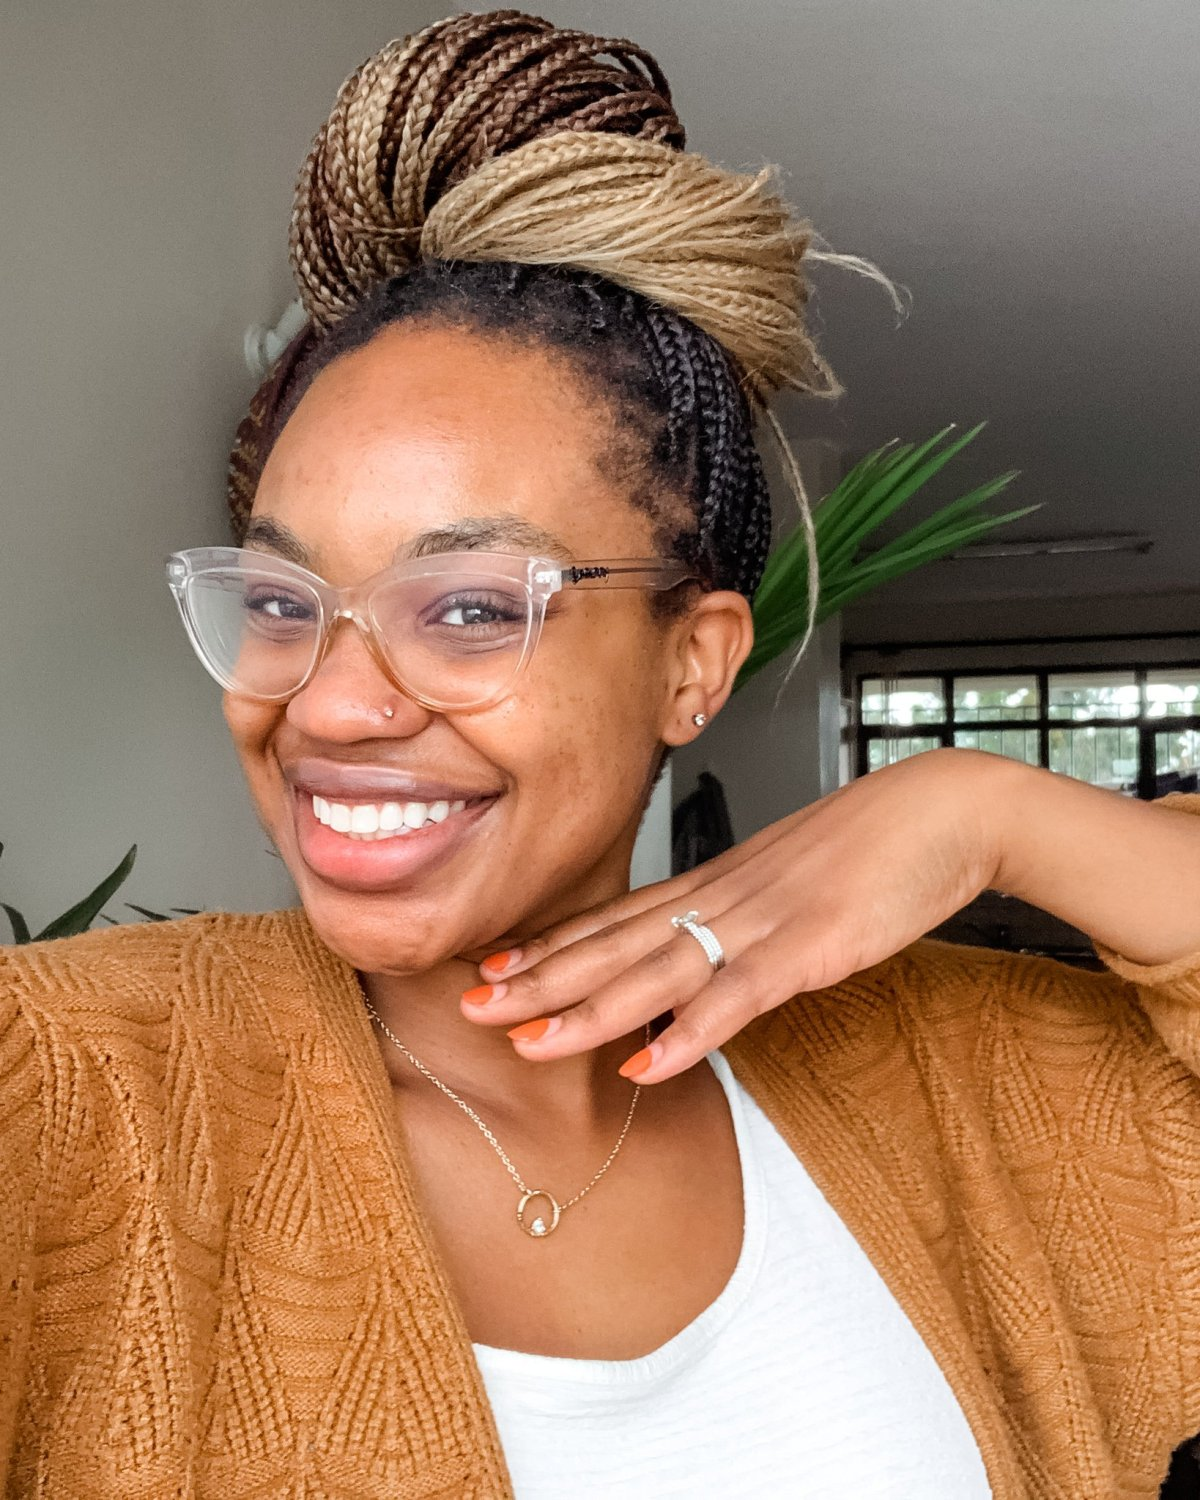 Ijeoma Kola Smiling with Glasses and High Braids Bun